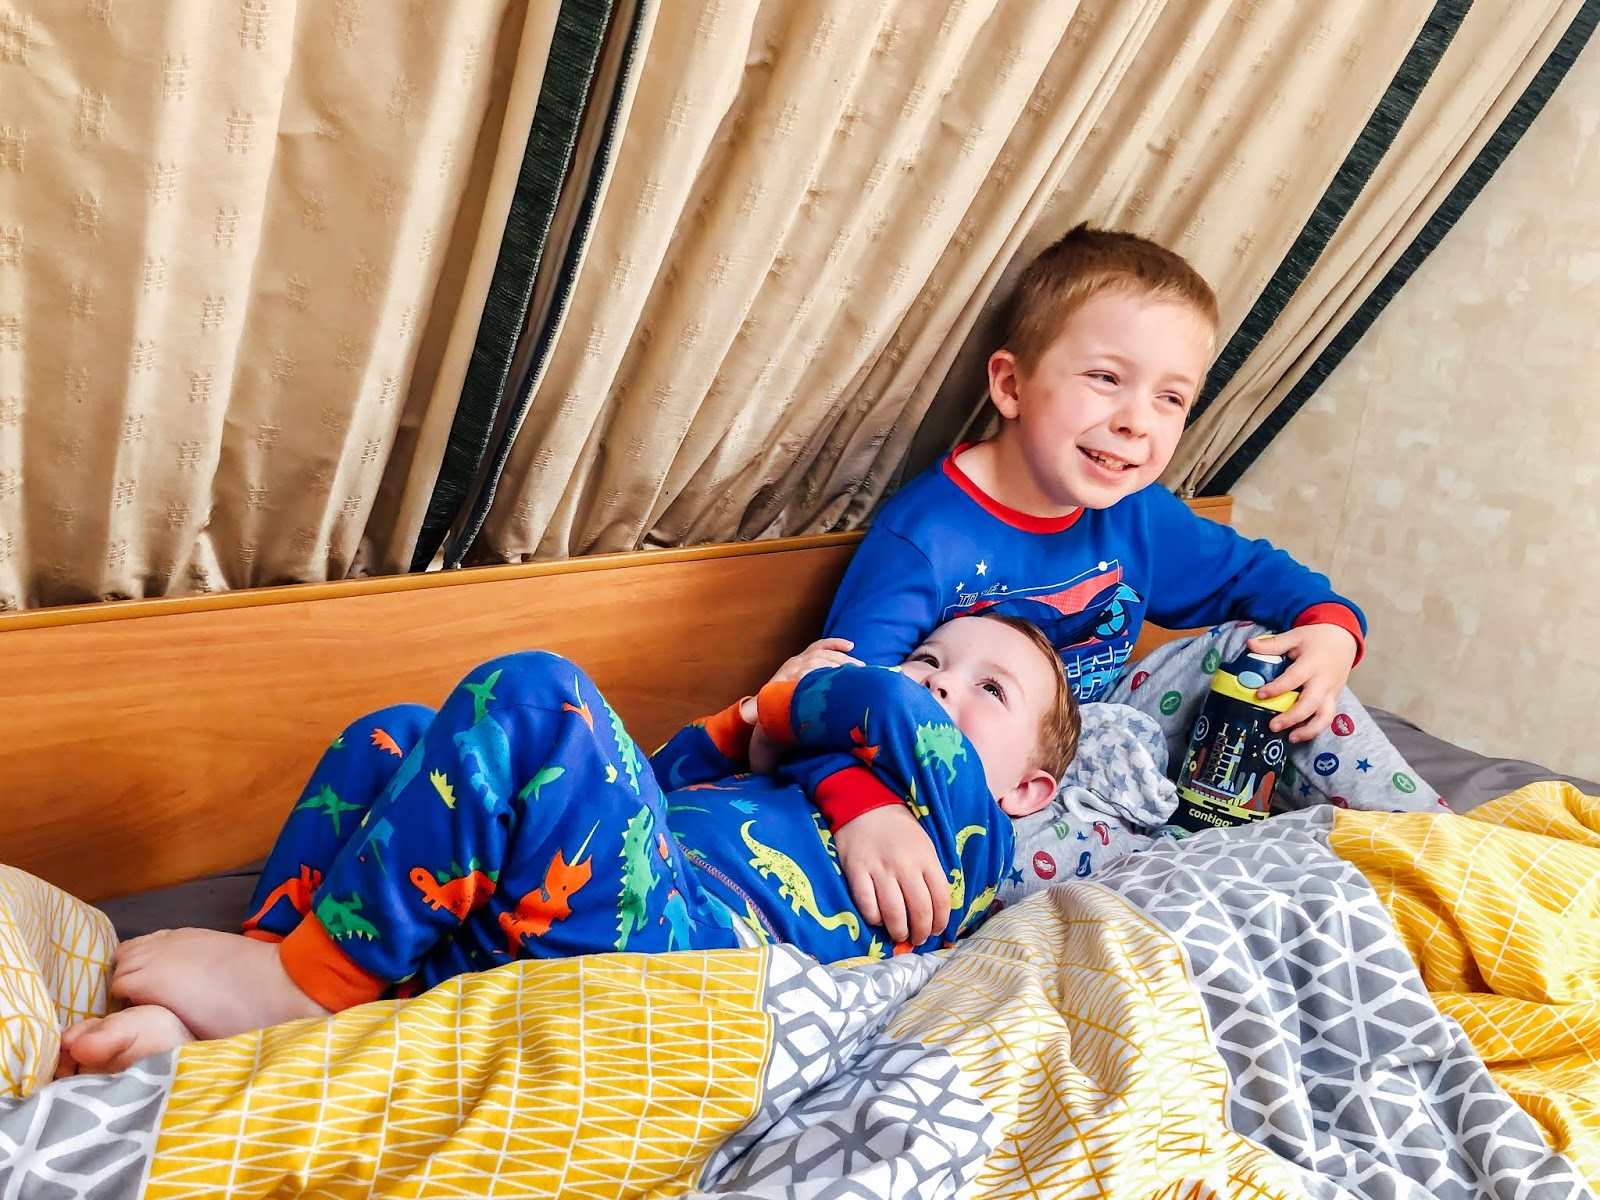 two young boys wearing colourful pyjamas, cuddling and smiling together on a caravan bed